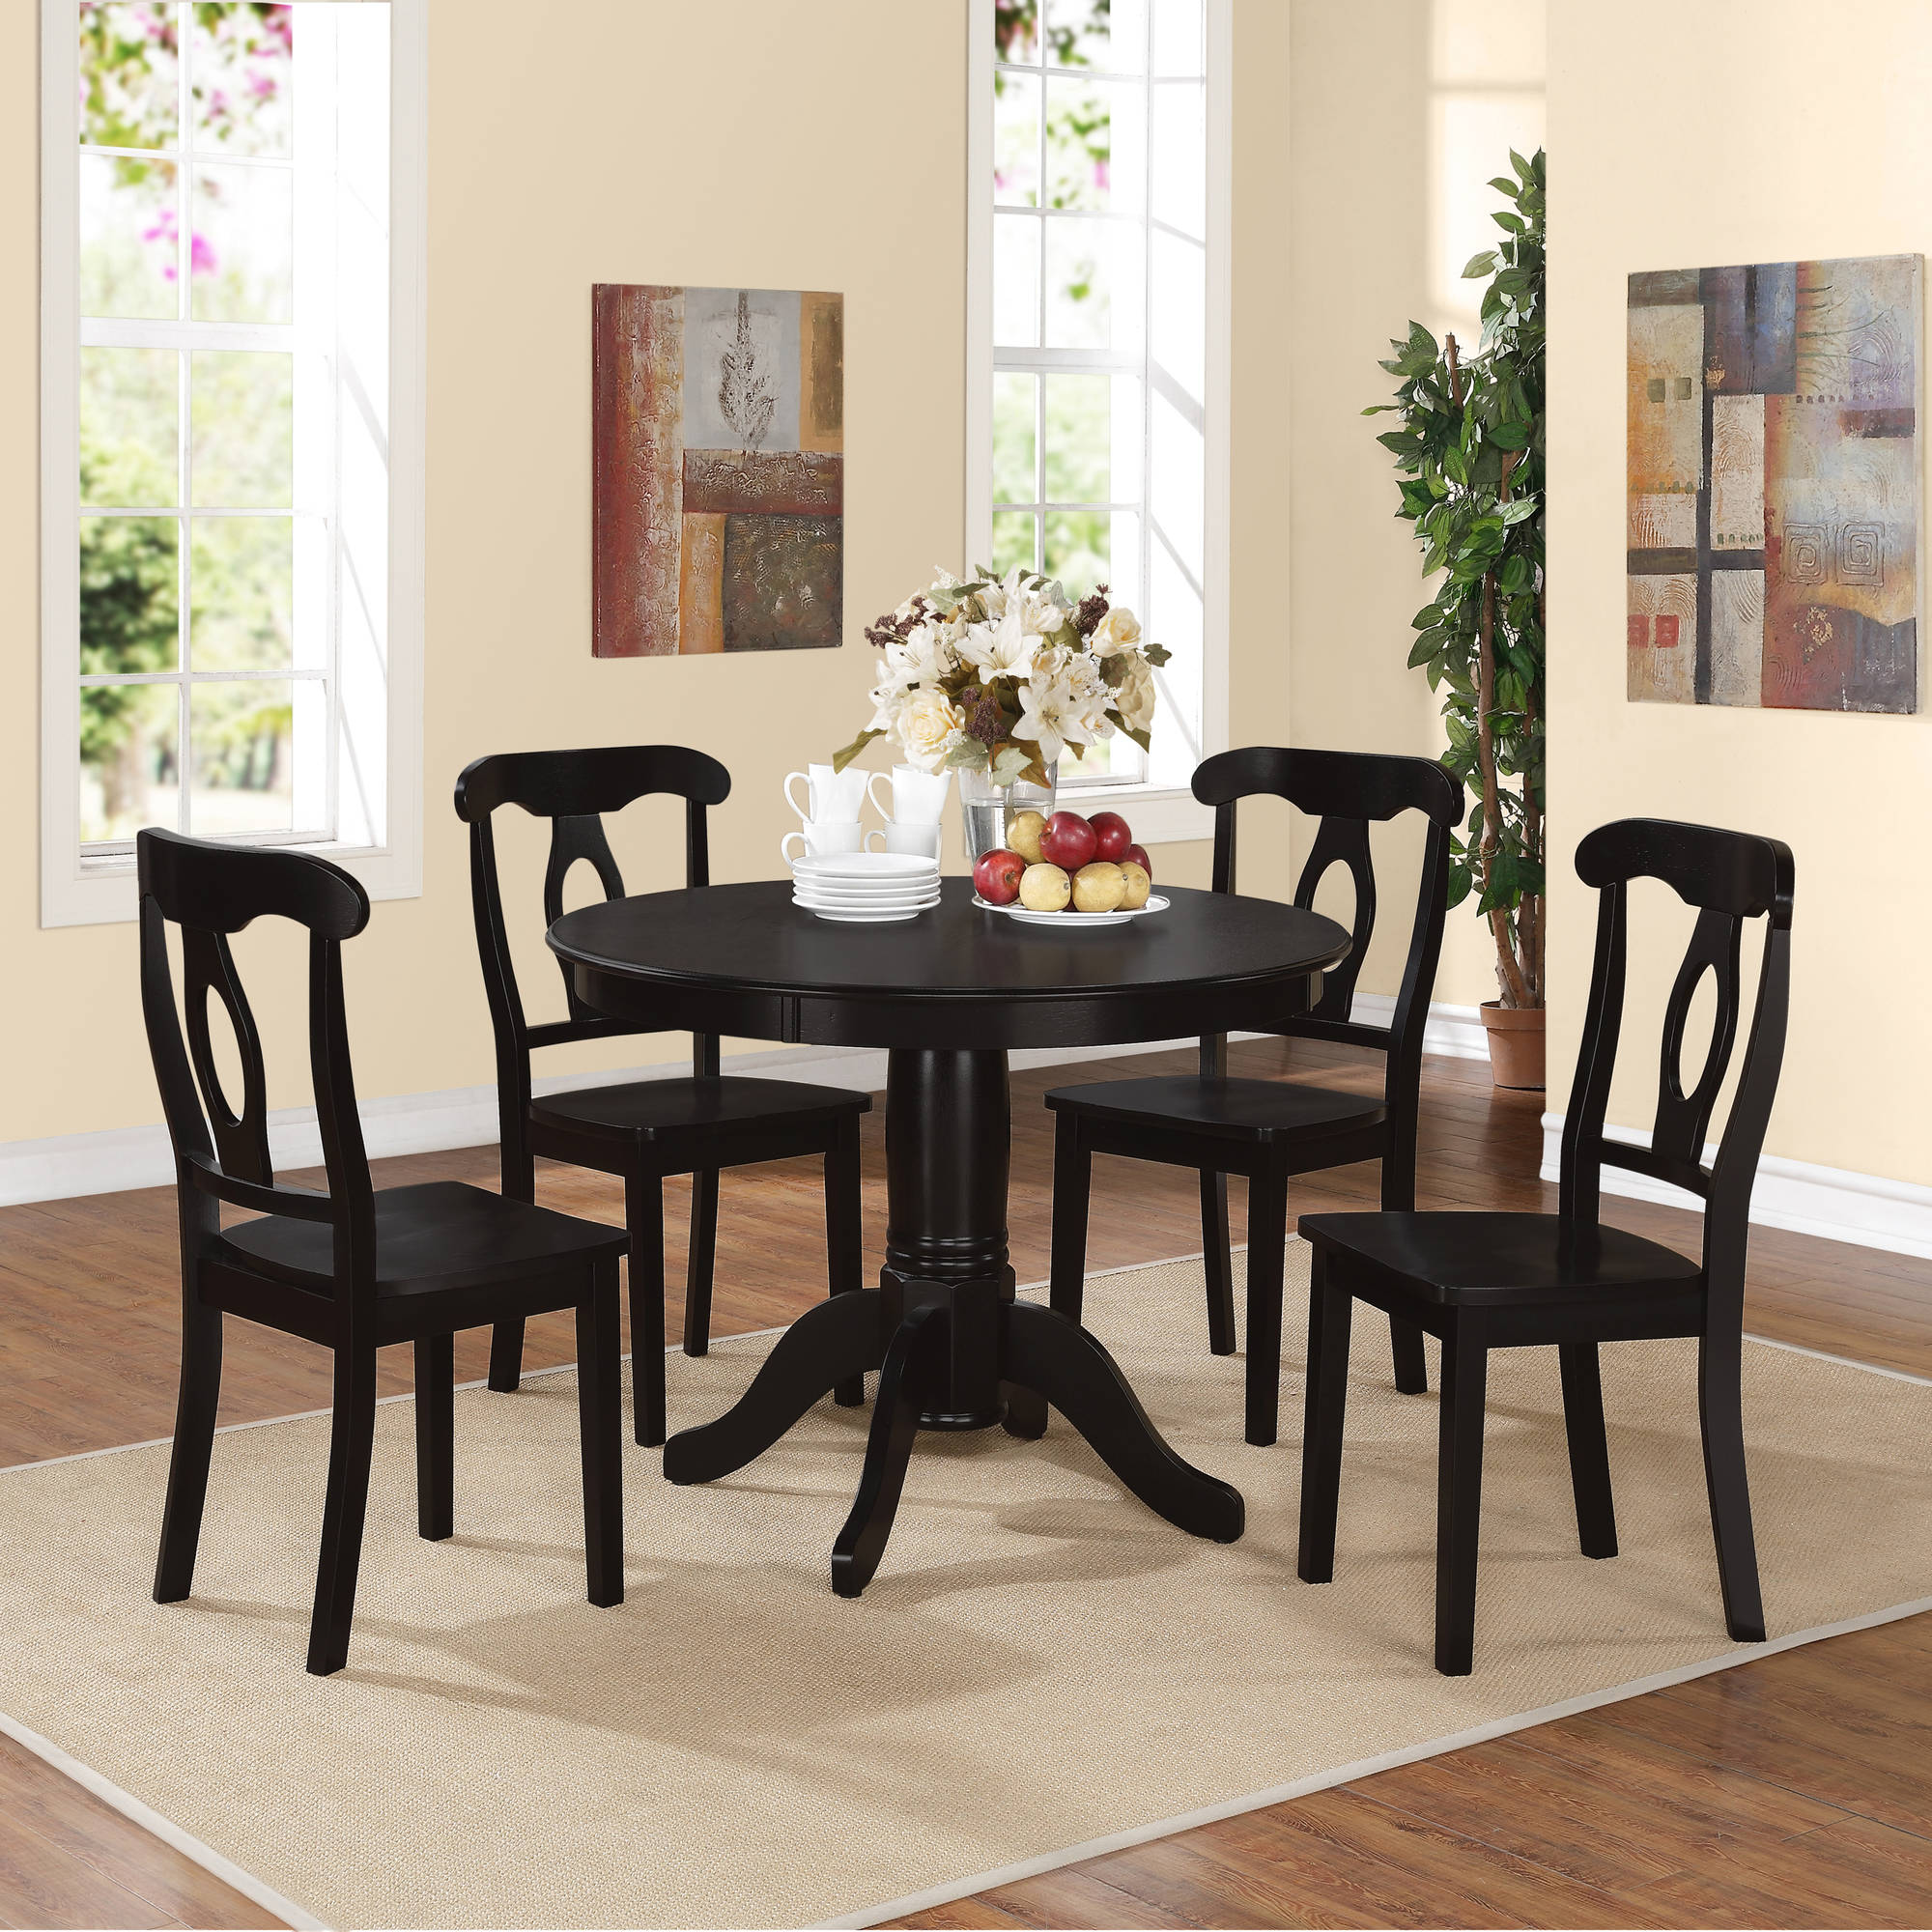 Dorel Home Aubrey 5-Piece Traditional Height Pedestal Dining Set, Multiple Colors